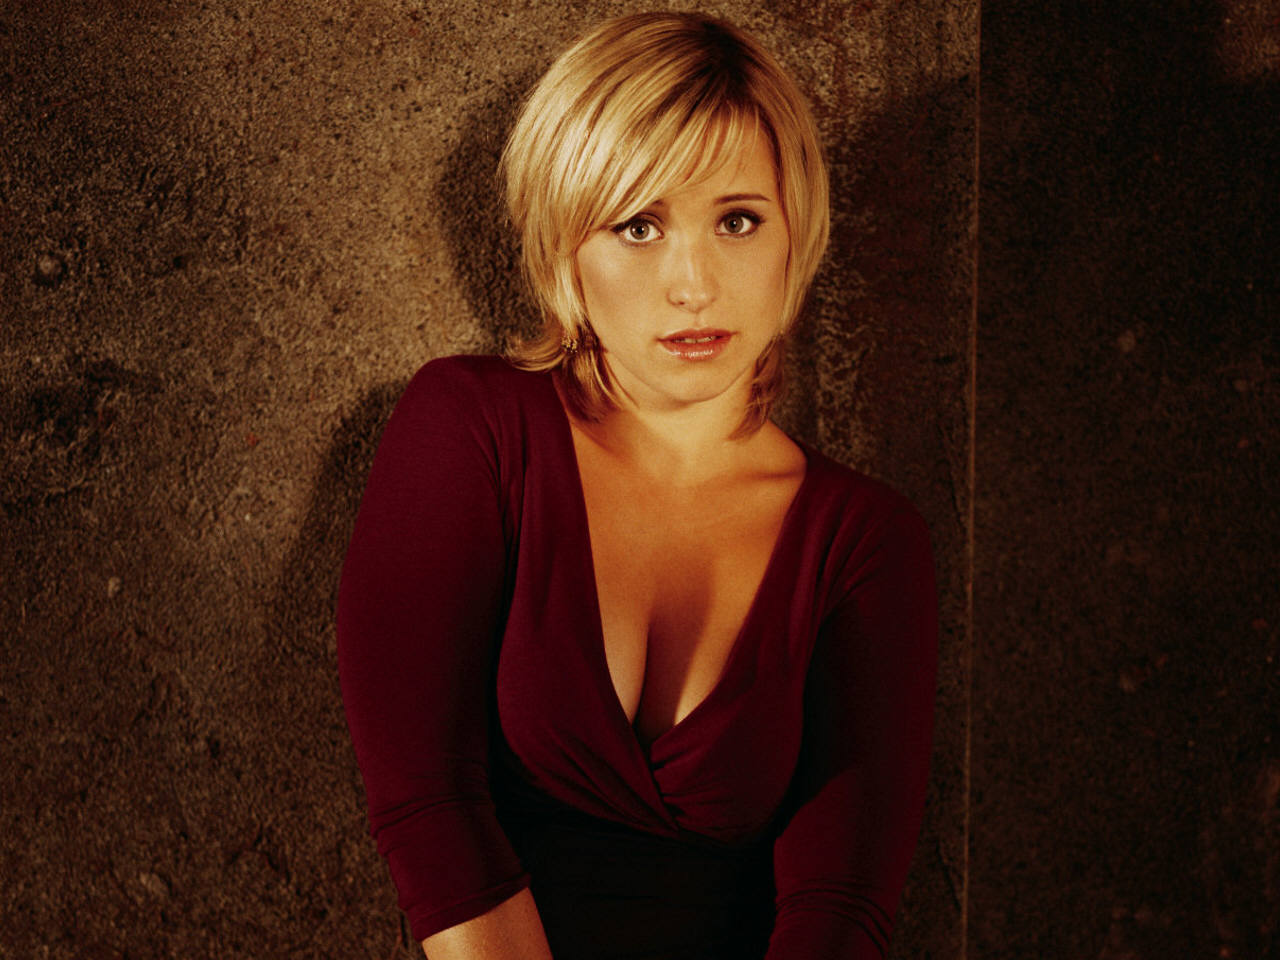 Hot Allison Mack nude photos 2019